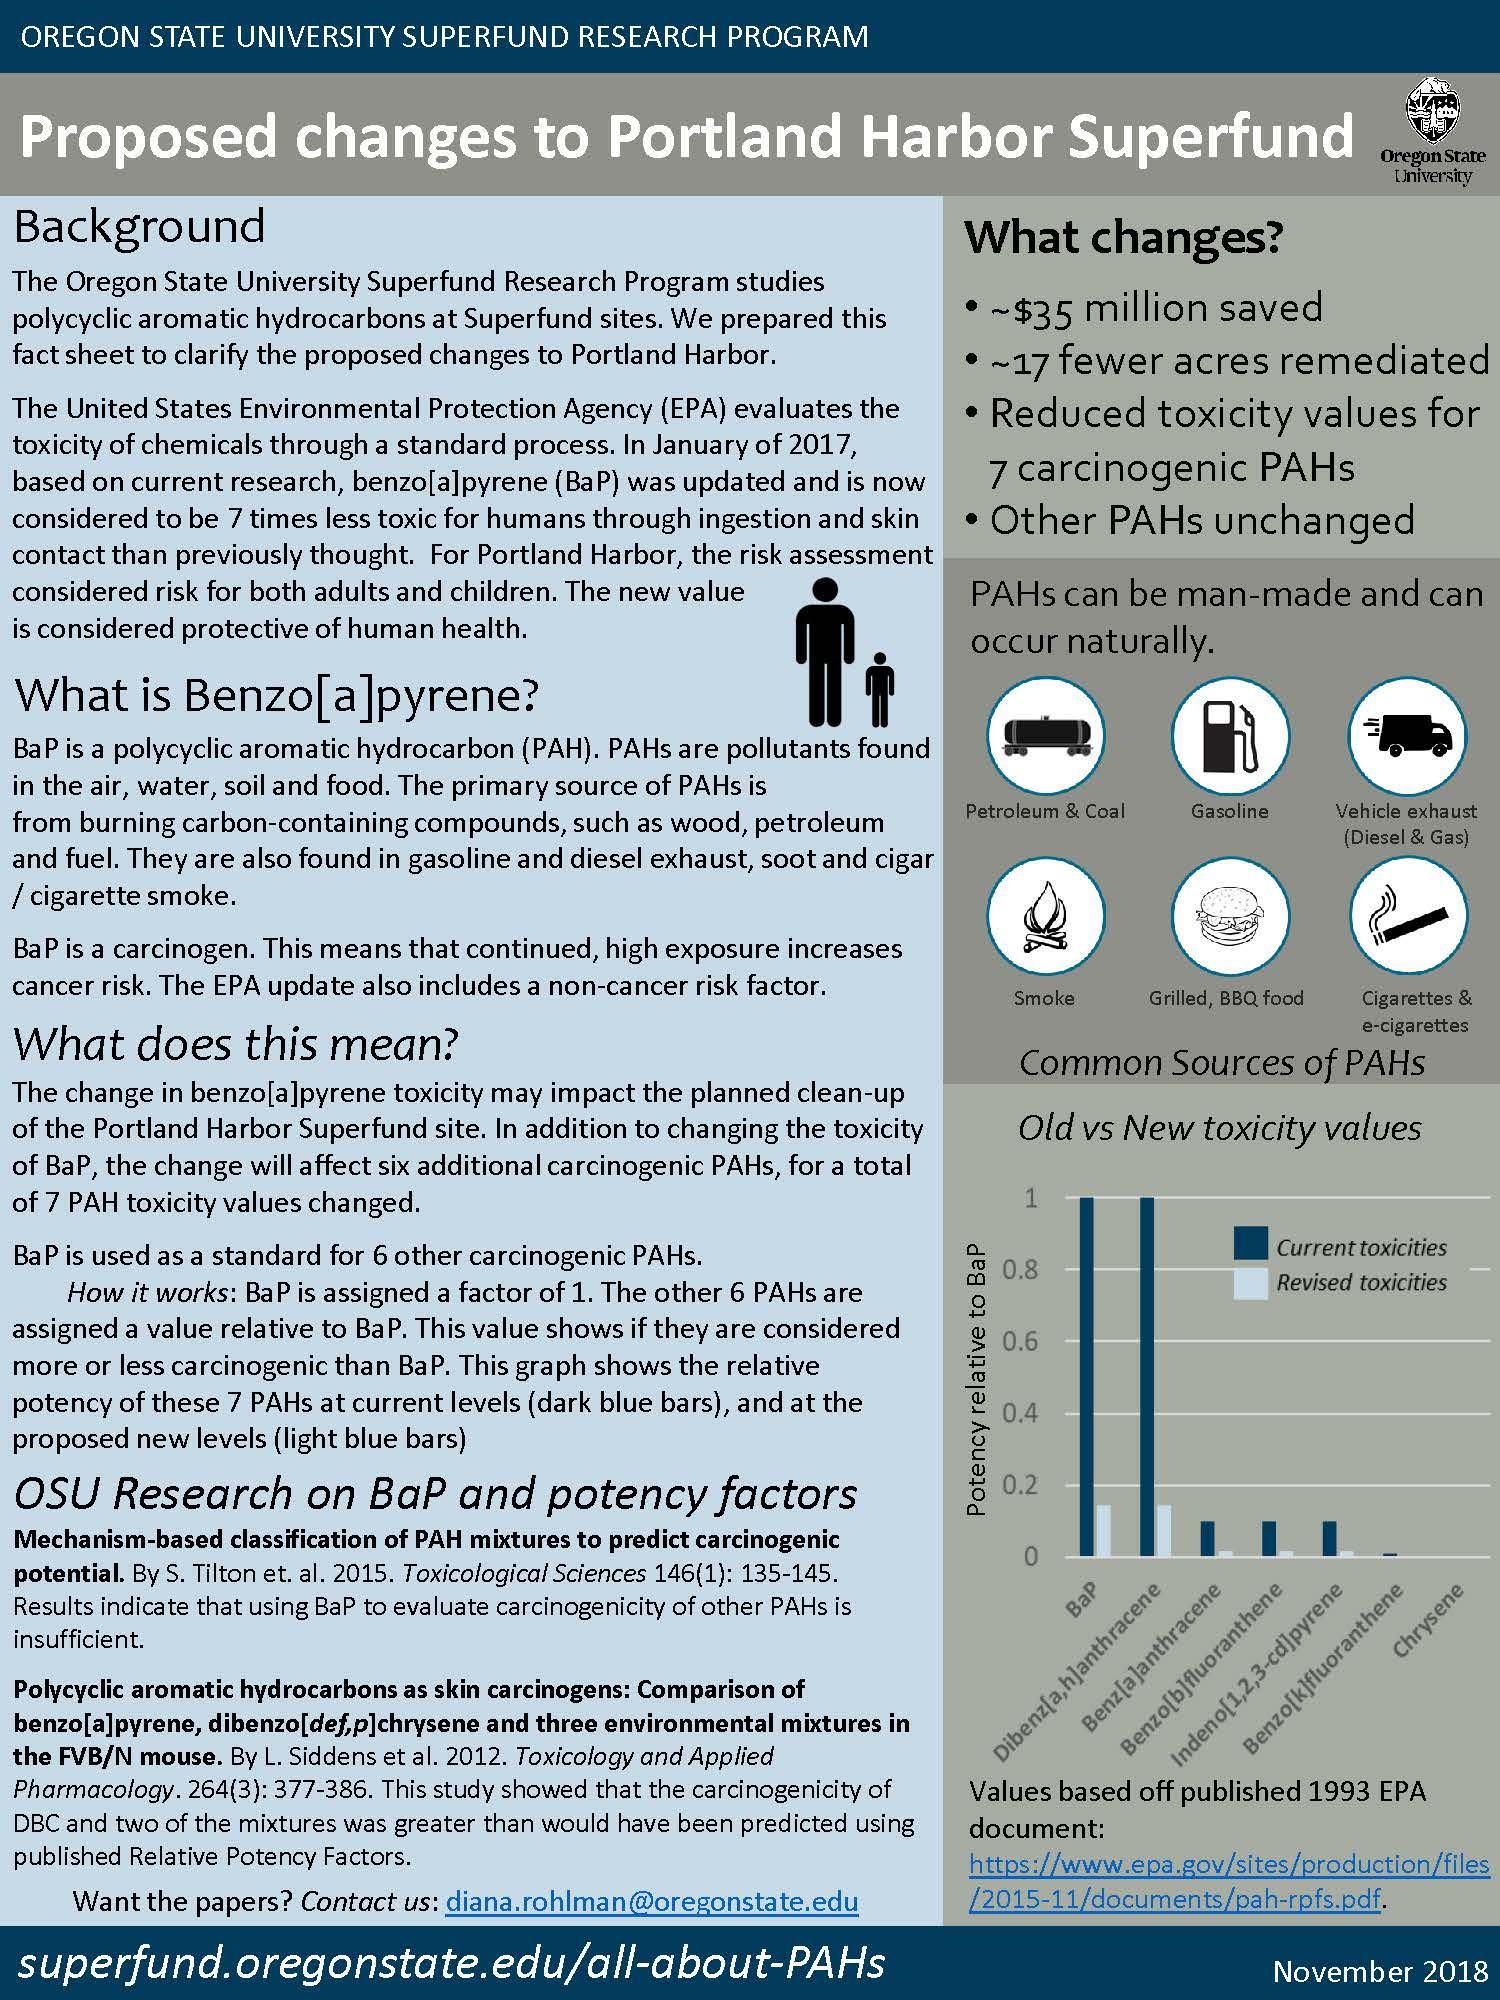 Infograph of Proposed changes to Portland Harbor Superfund